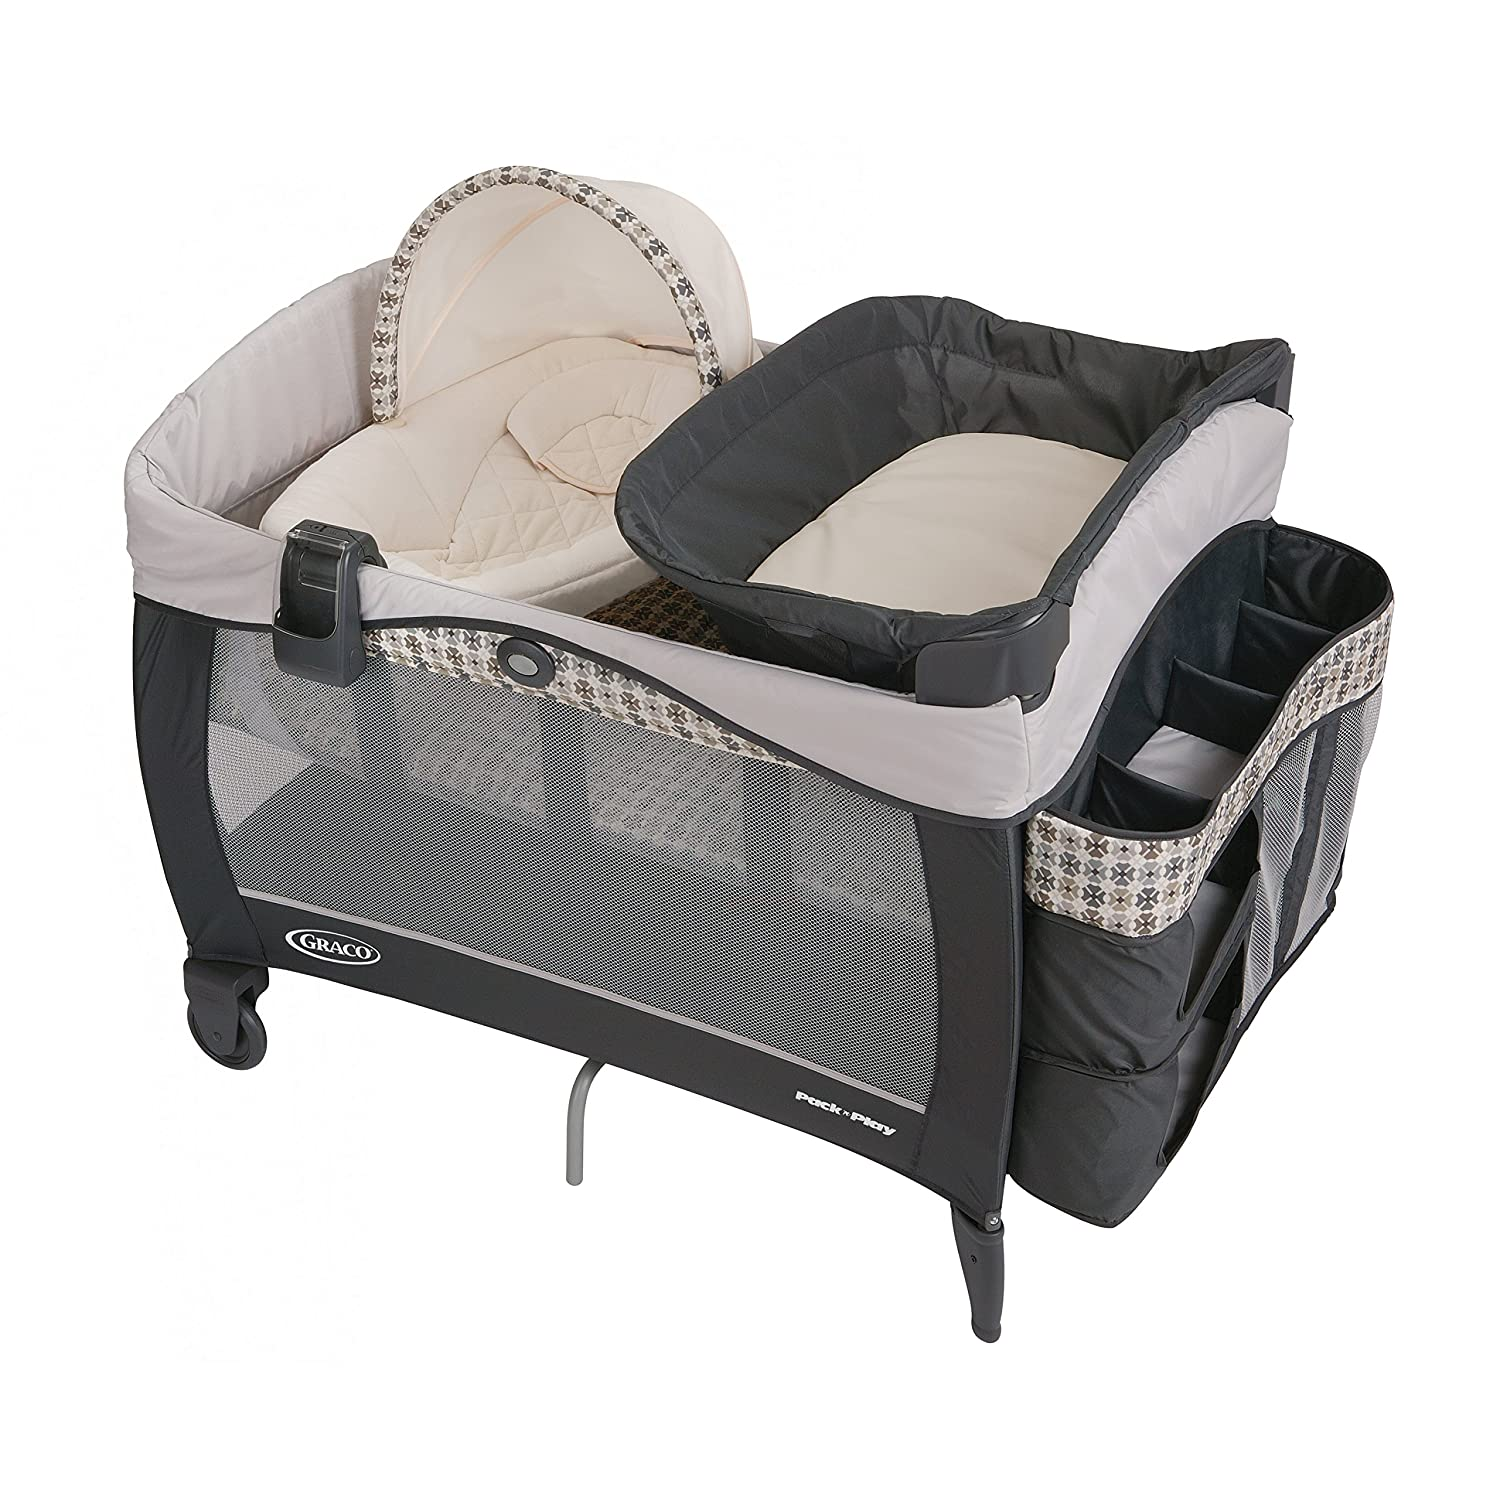 Graco Pack n Play Playard Includes Elite Newborn Napper, Full-Size Infant Bassinet, and Diaper Changer, Vance